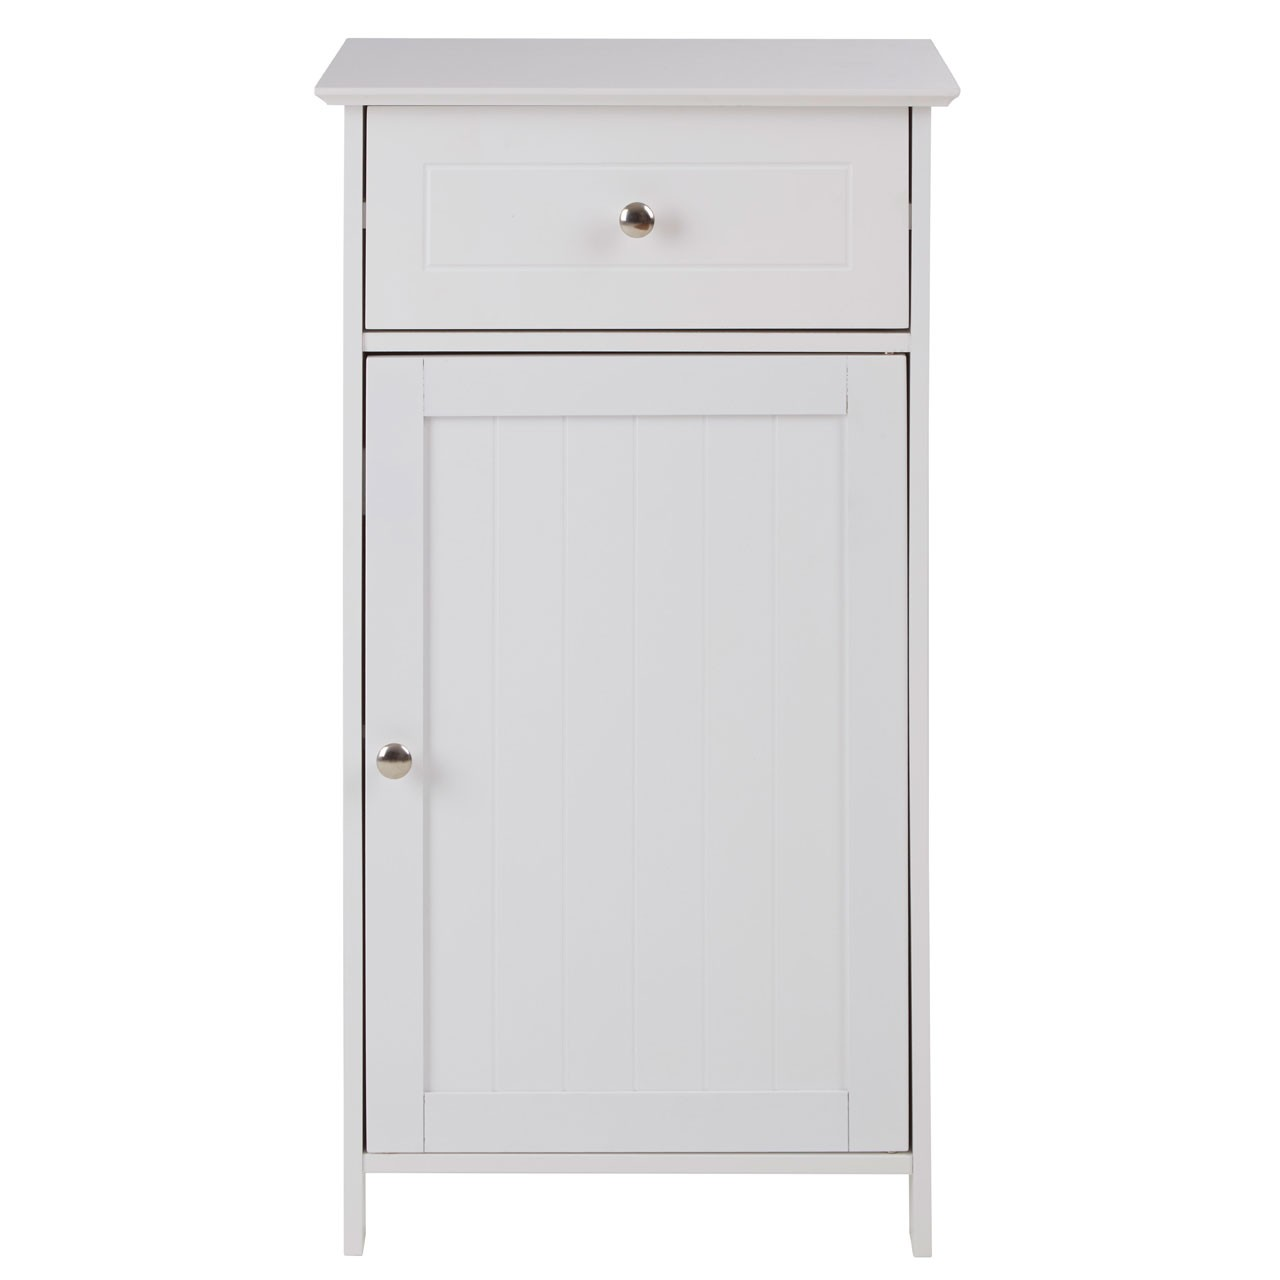 Portern Storage Cabinet For Home Laundry